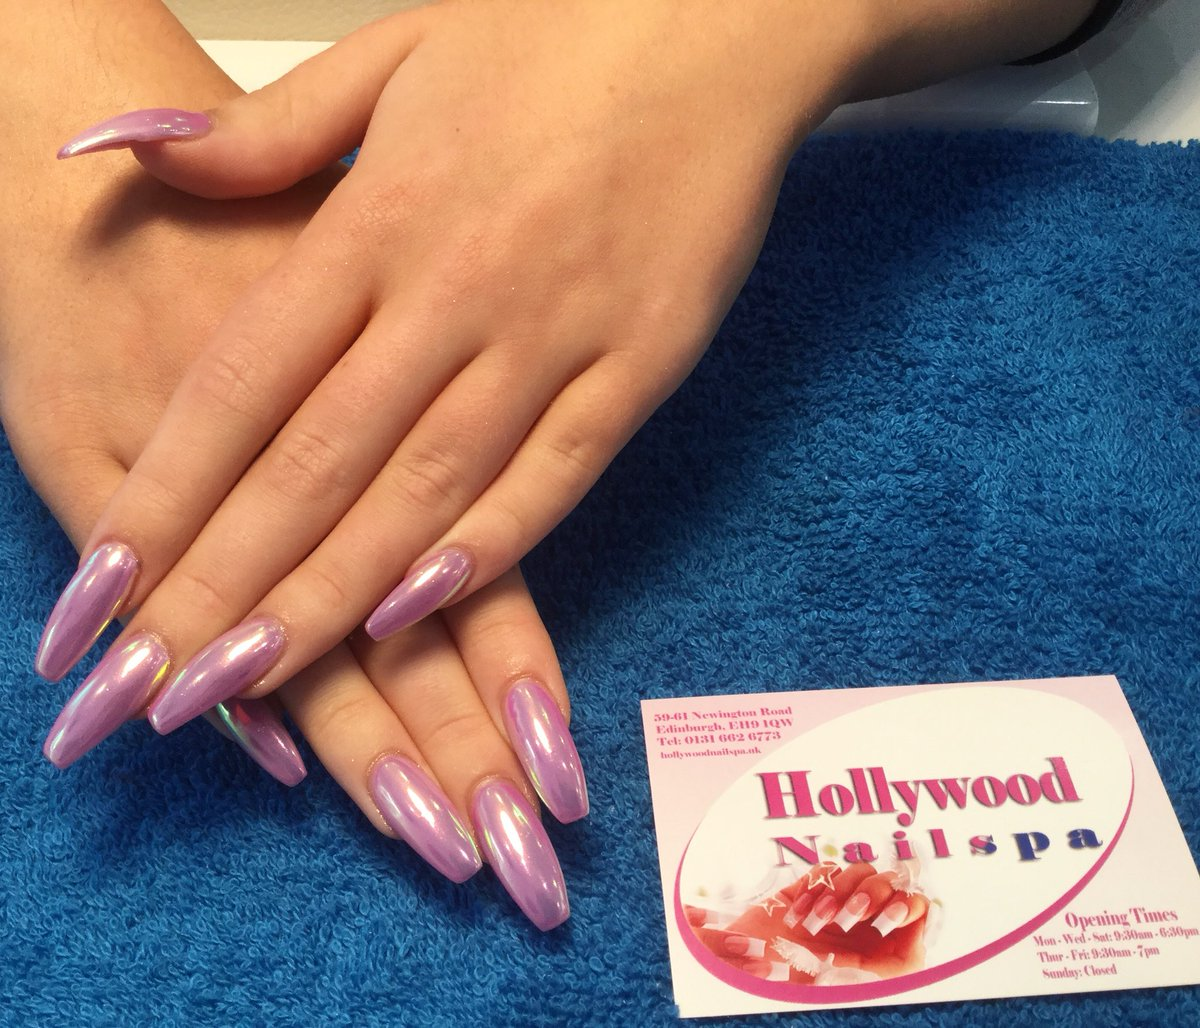 hollywood nailspa on Twitter: \